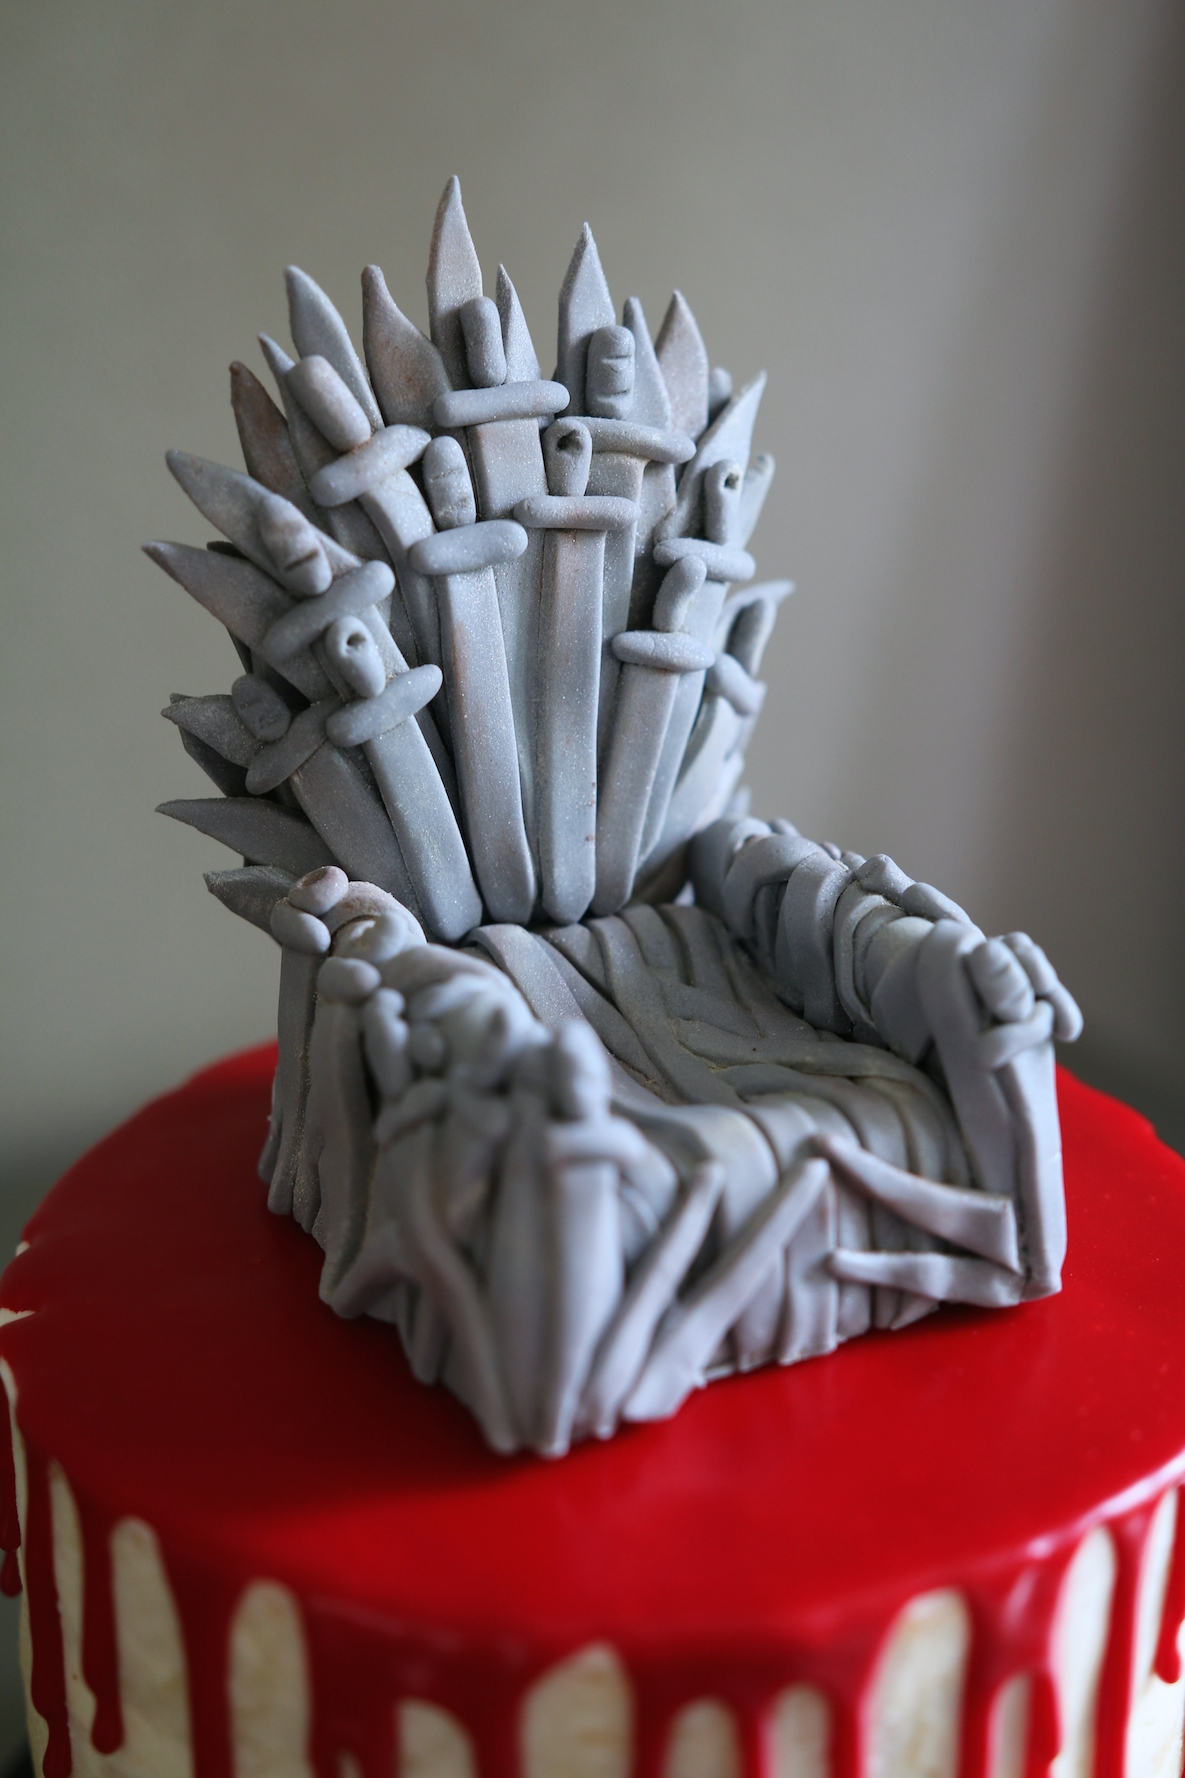 Game of thrones chair cake - Got_02 Got_03 Got_04